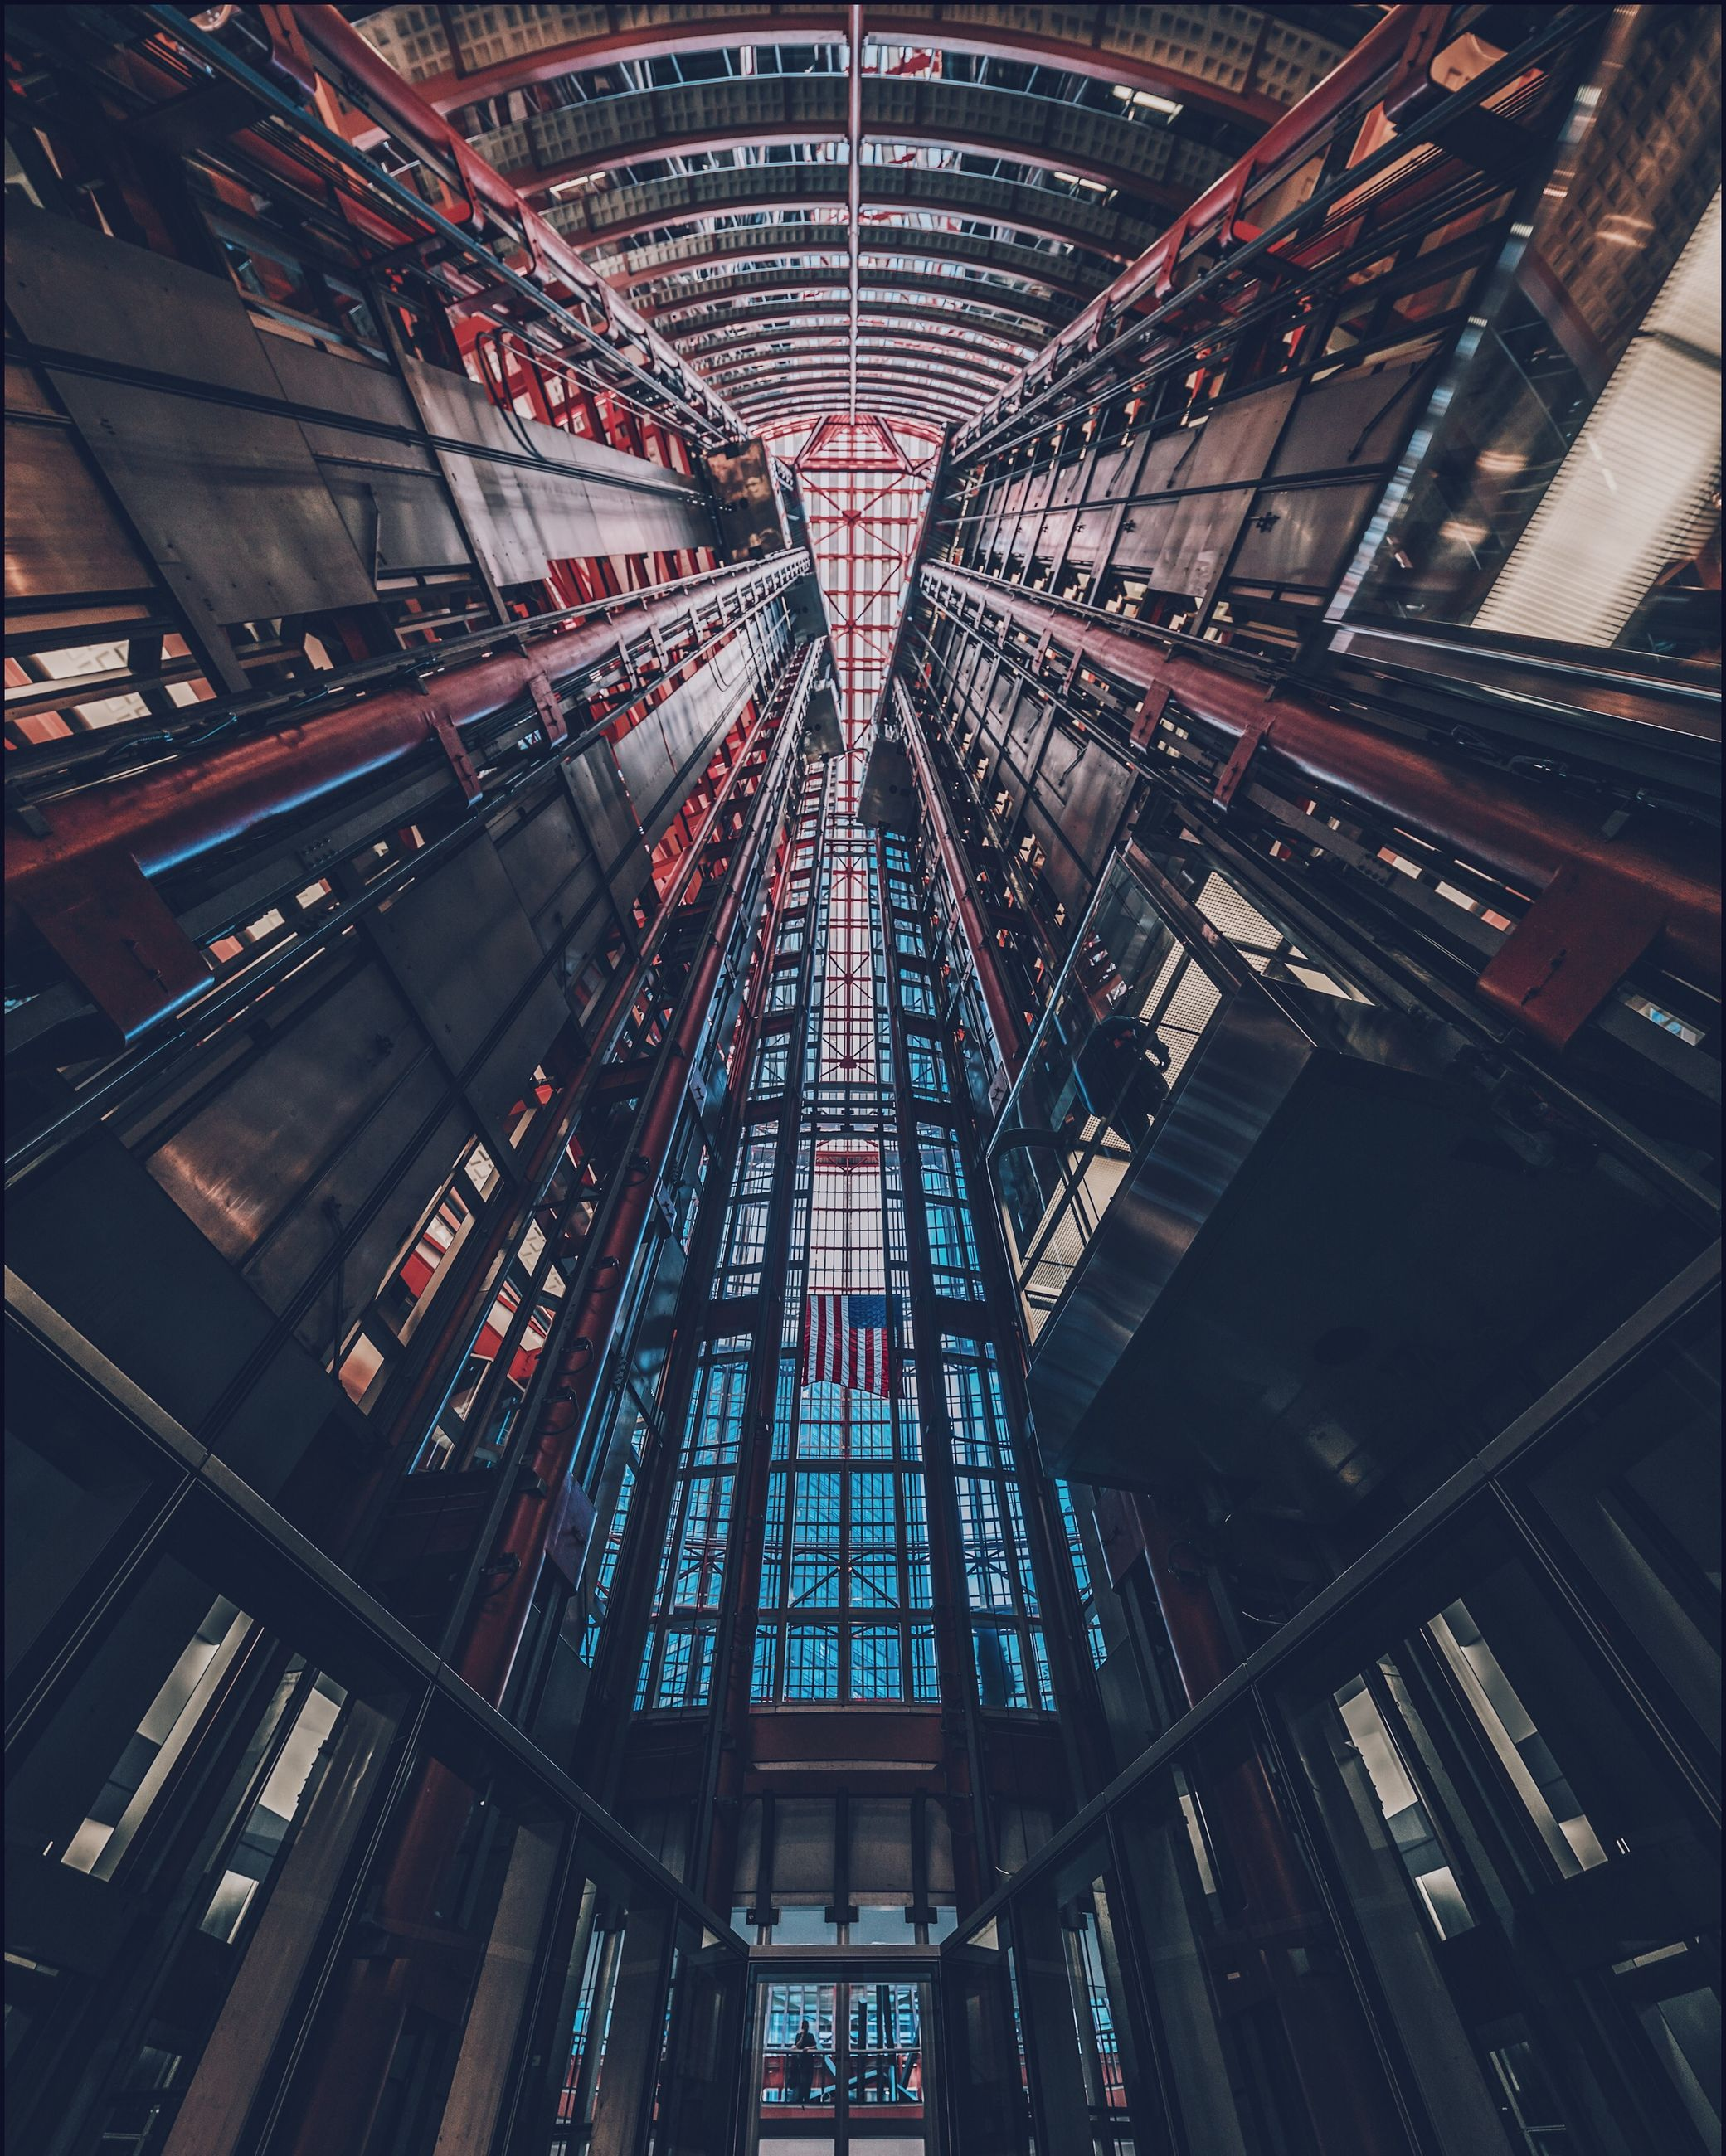 architecture, built structure, low angle view, no people, indoors, modern, building, ceiling, illuminated, tall - high, city, glass - material, pattern, architectural feature, directly below, day, metal, lighting equipment, skyscraper, luxury